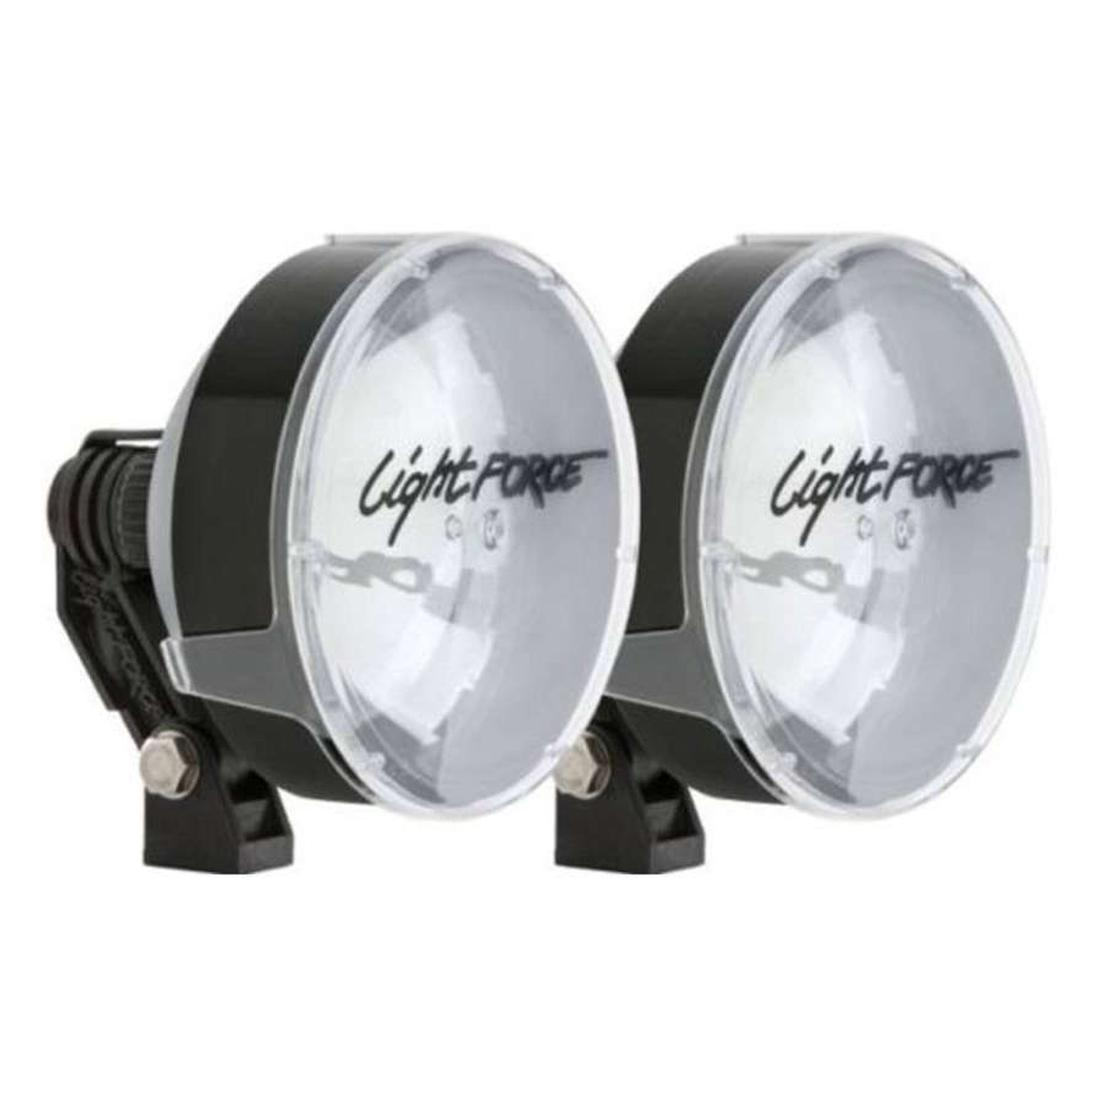 Lightforce 170 Striker Halogen Driving Lights - 100W image